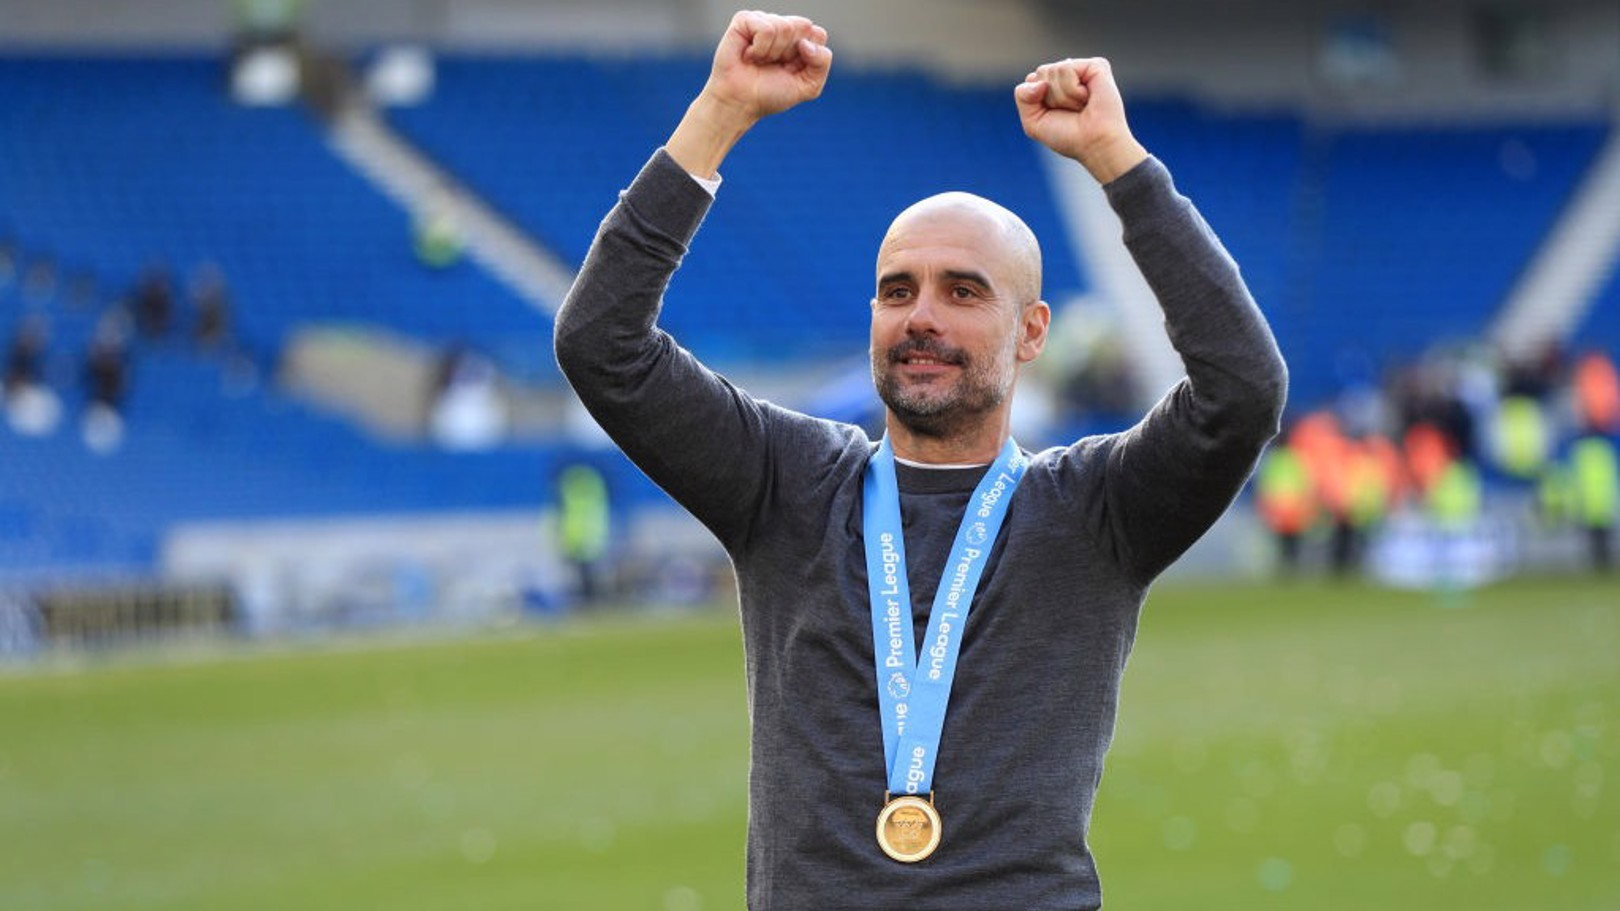 JUST CHAMPION: Pep Guardiola salutes the City fans at Brighton.